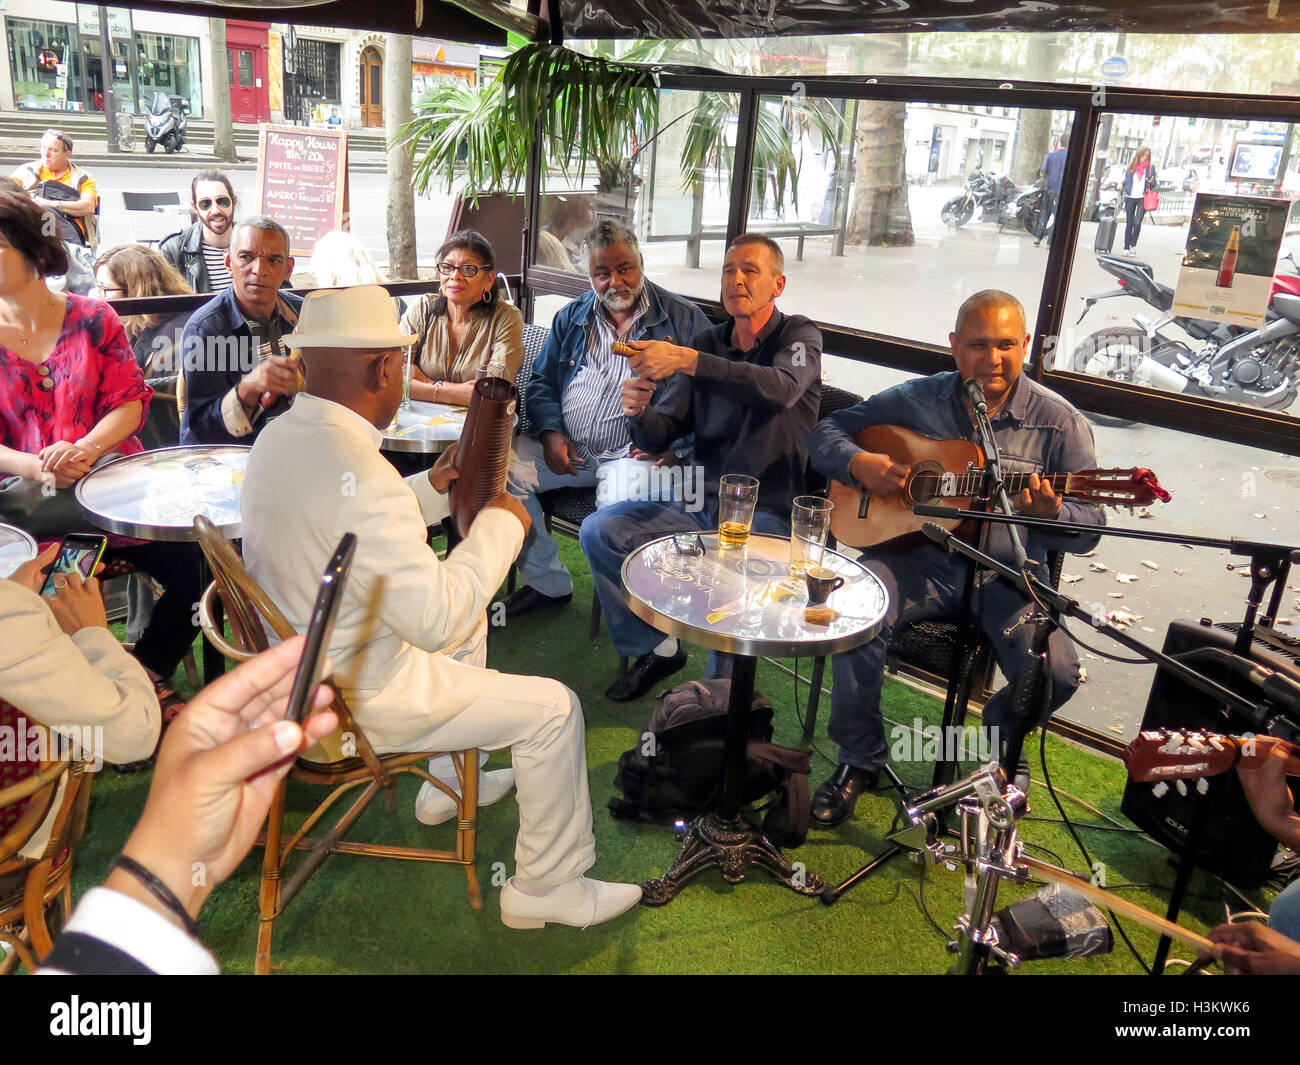 People drinking at night in the Interior of the Café Paris bar, Havana Cuba, Caribbean, example of cuban culture - Stock Image